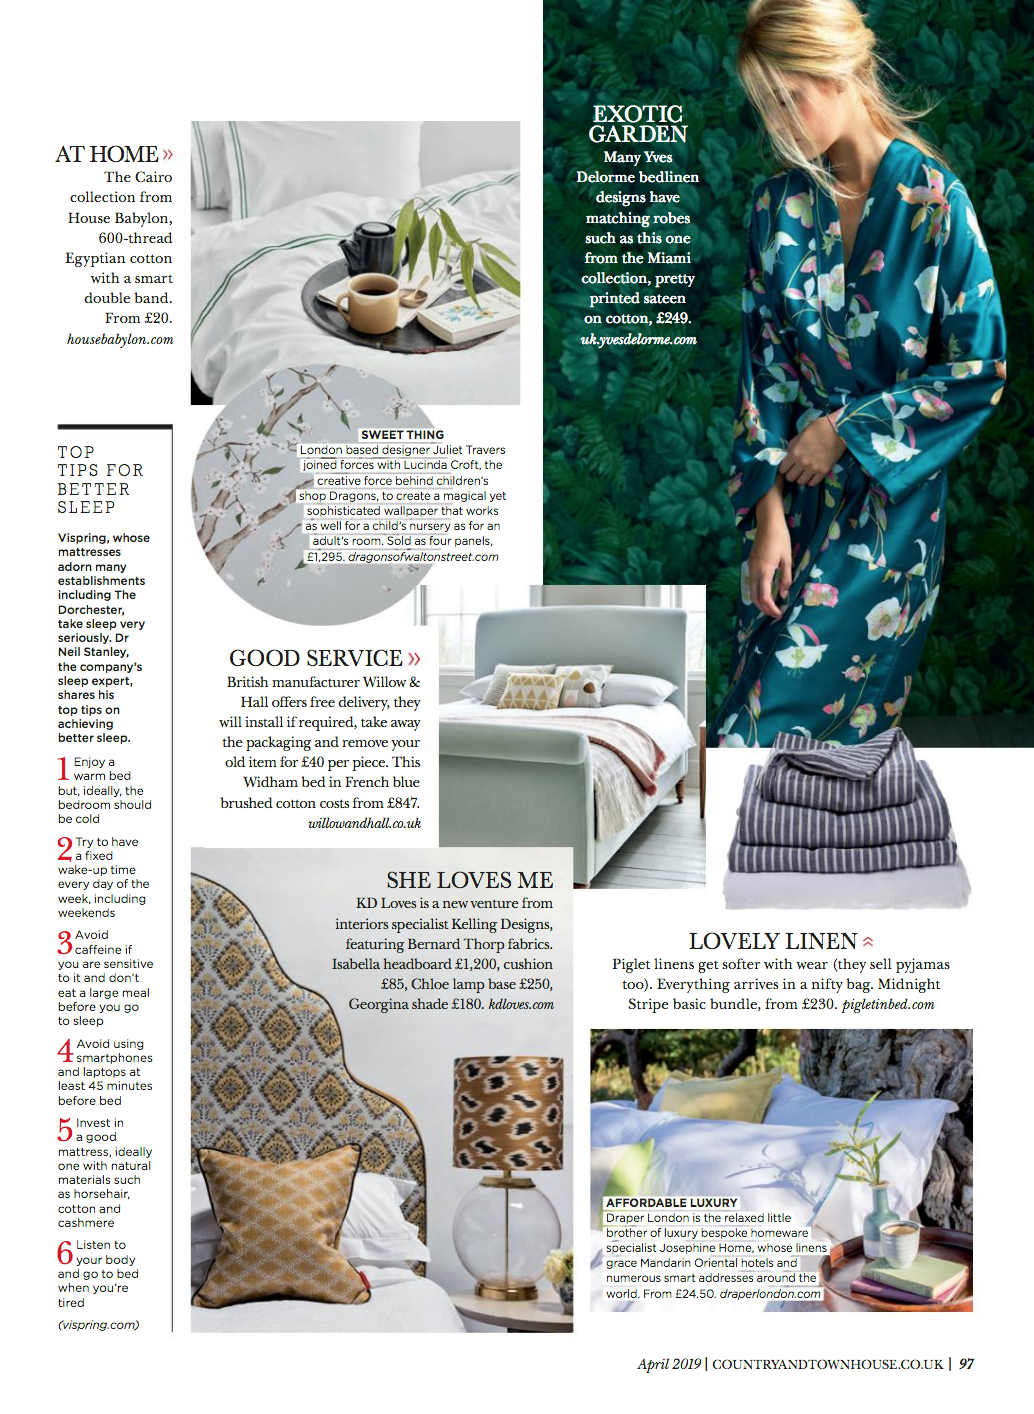 Country & Town House, pg97 Isabella headboard (LS), April 19.png